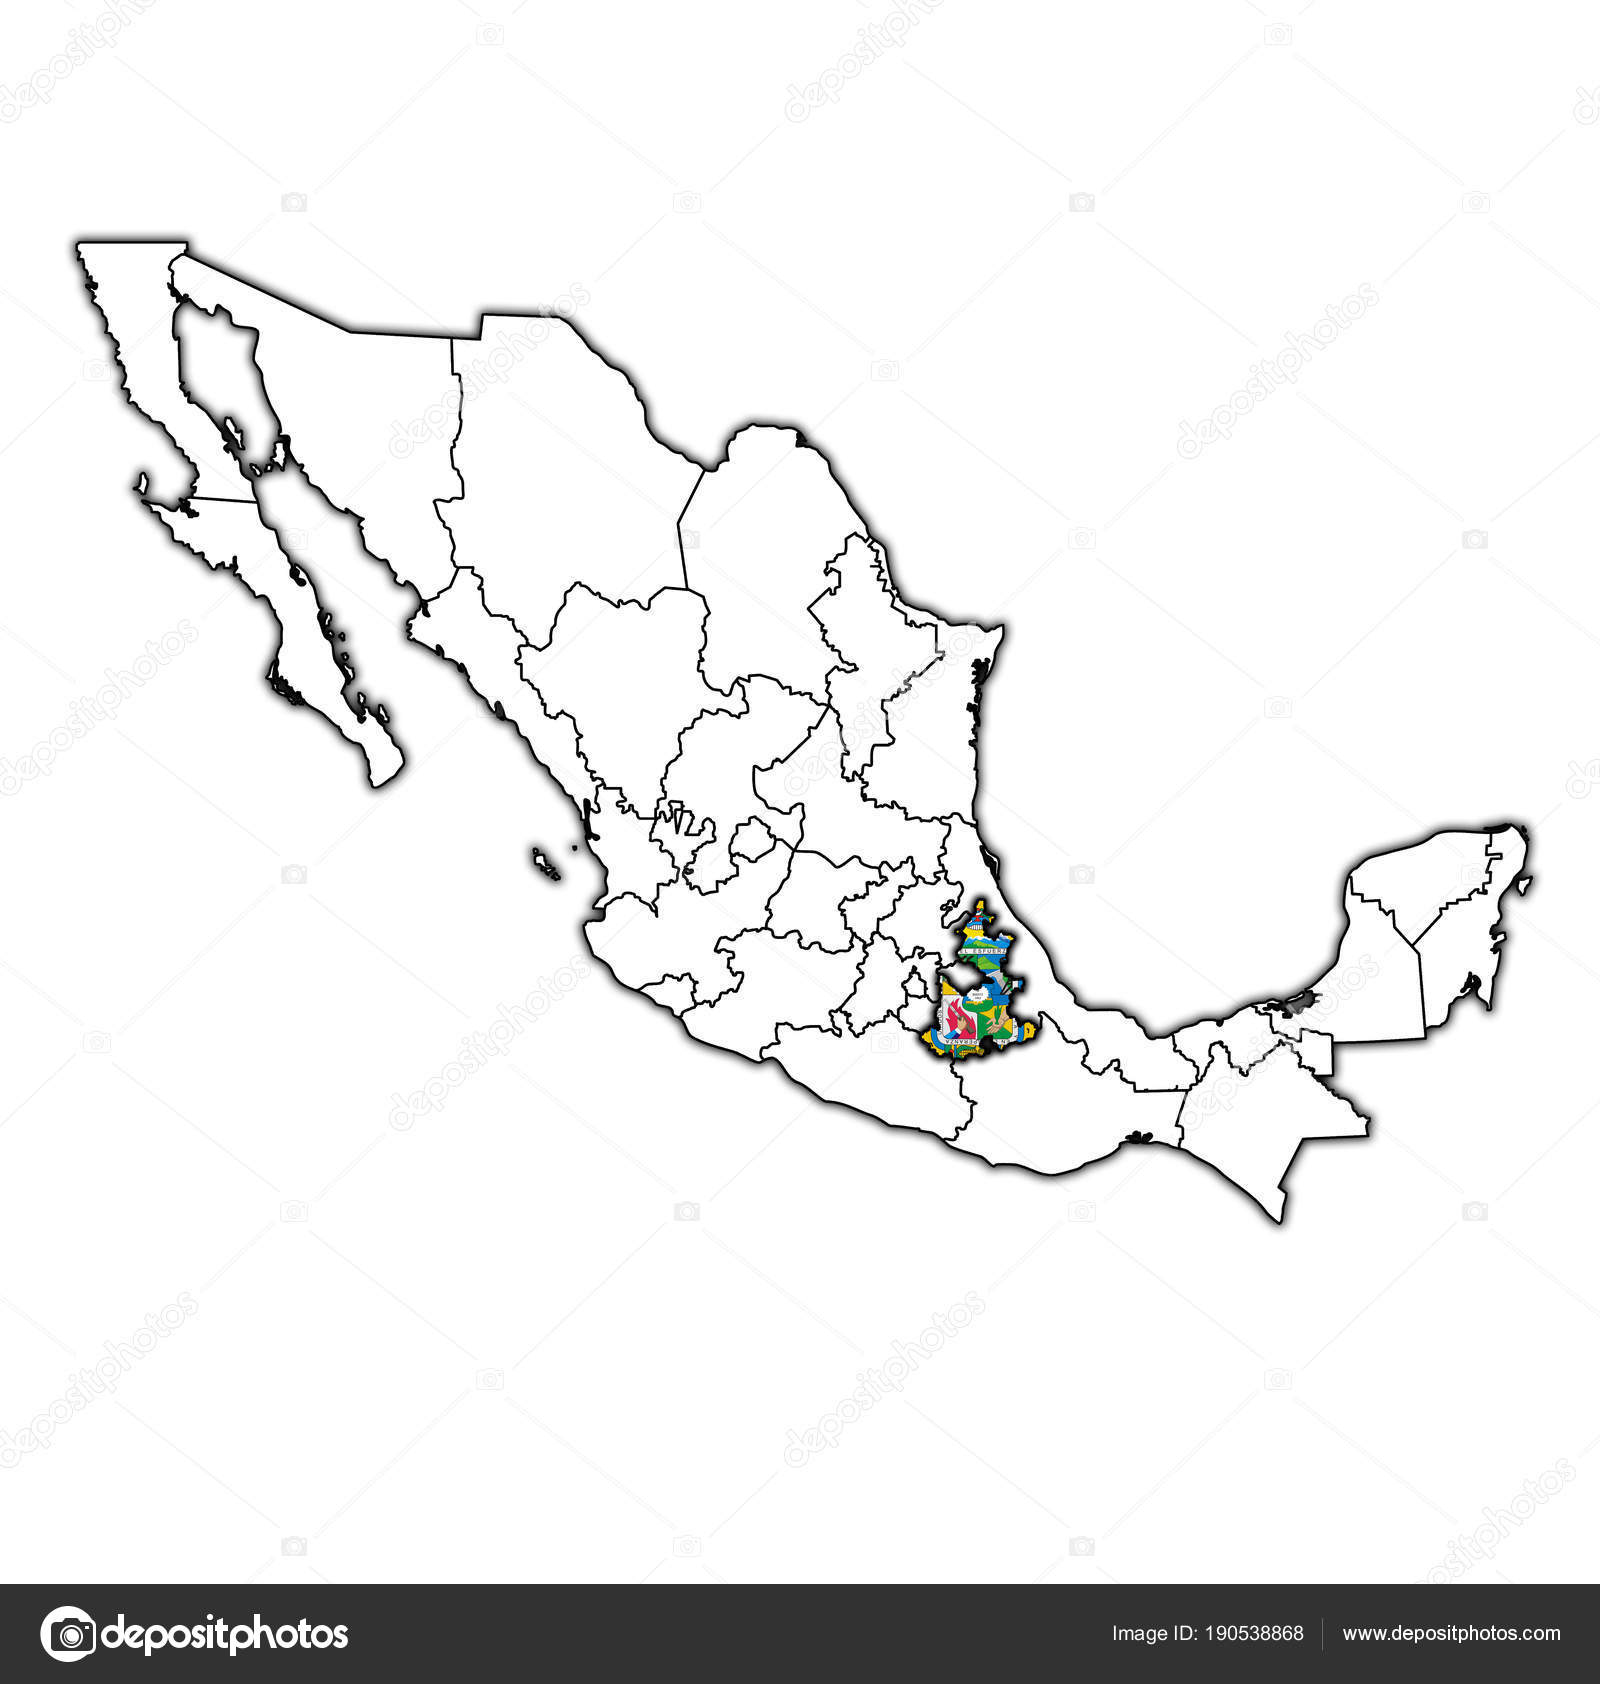 Puebla On Administration Map Of Mexico Stock Photo C Michal812